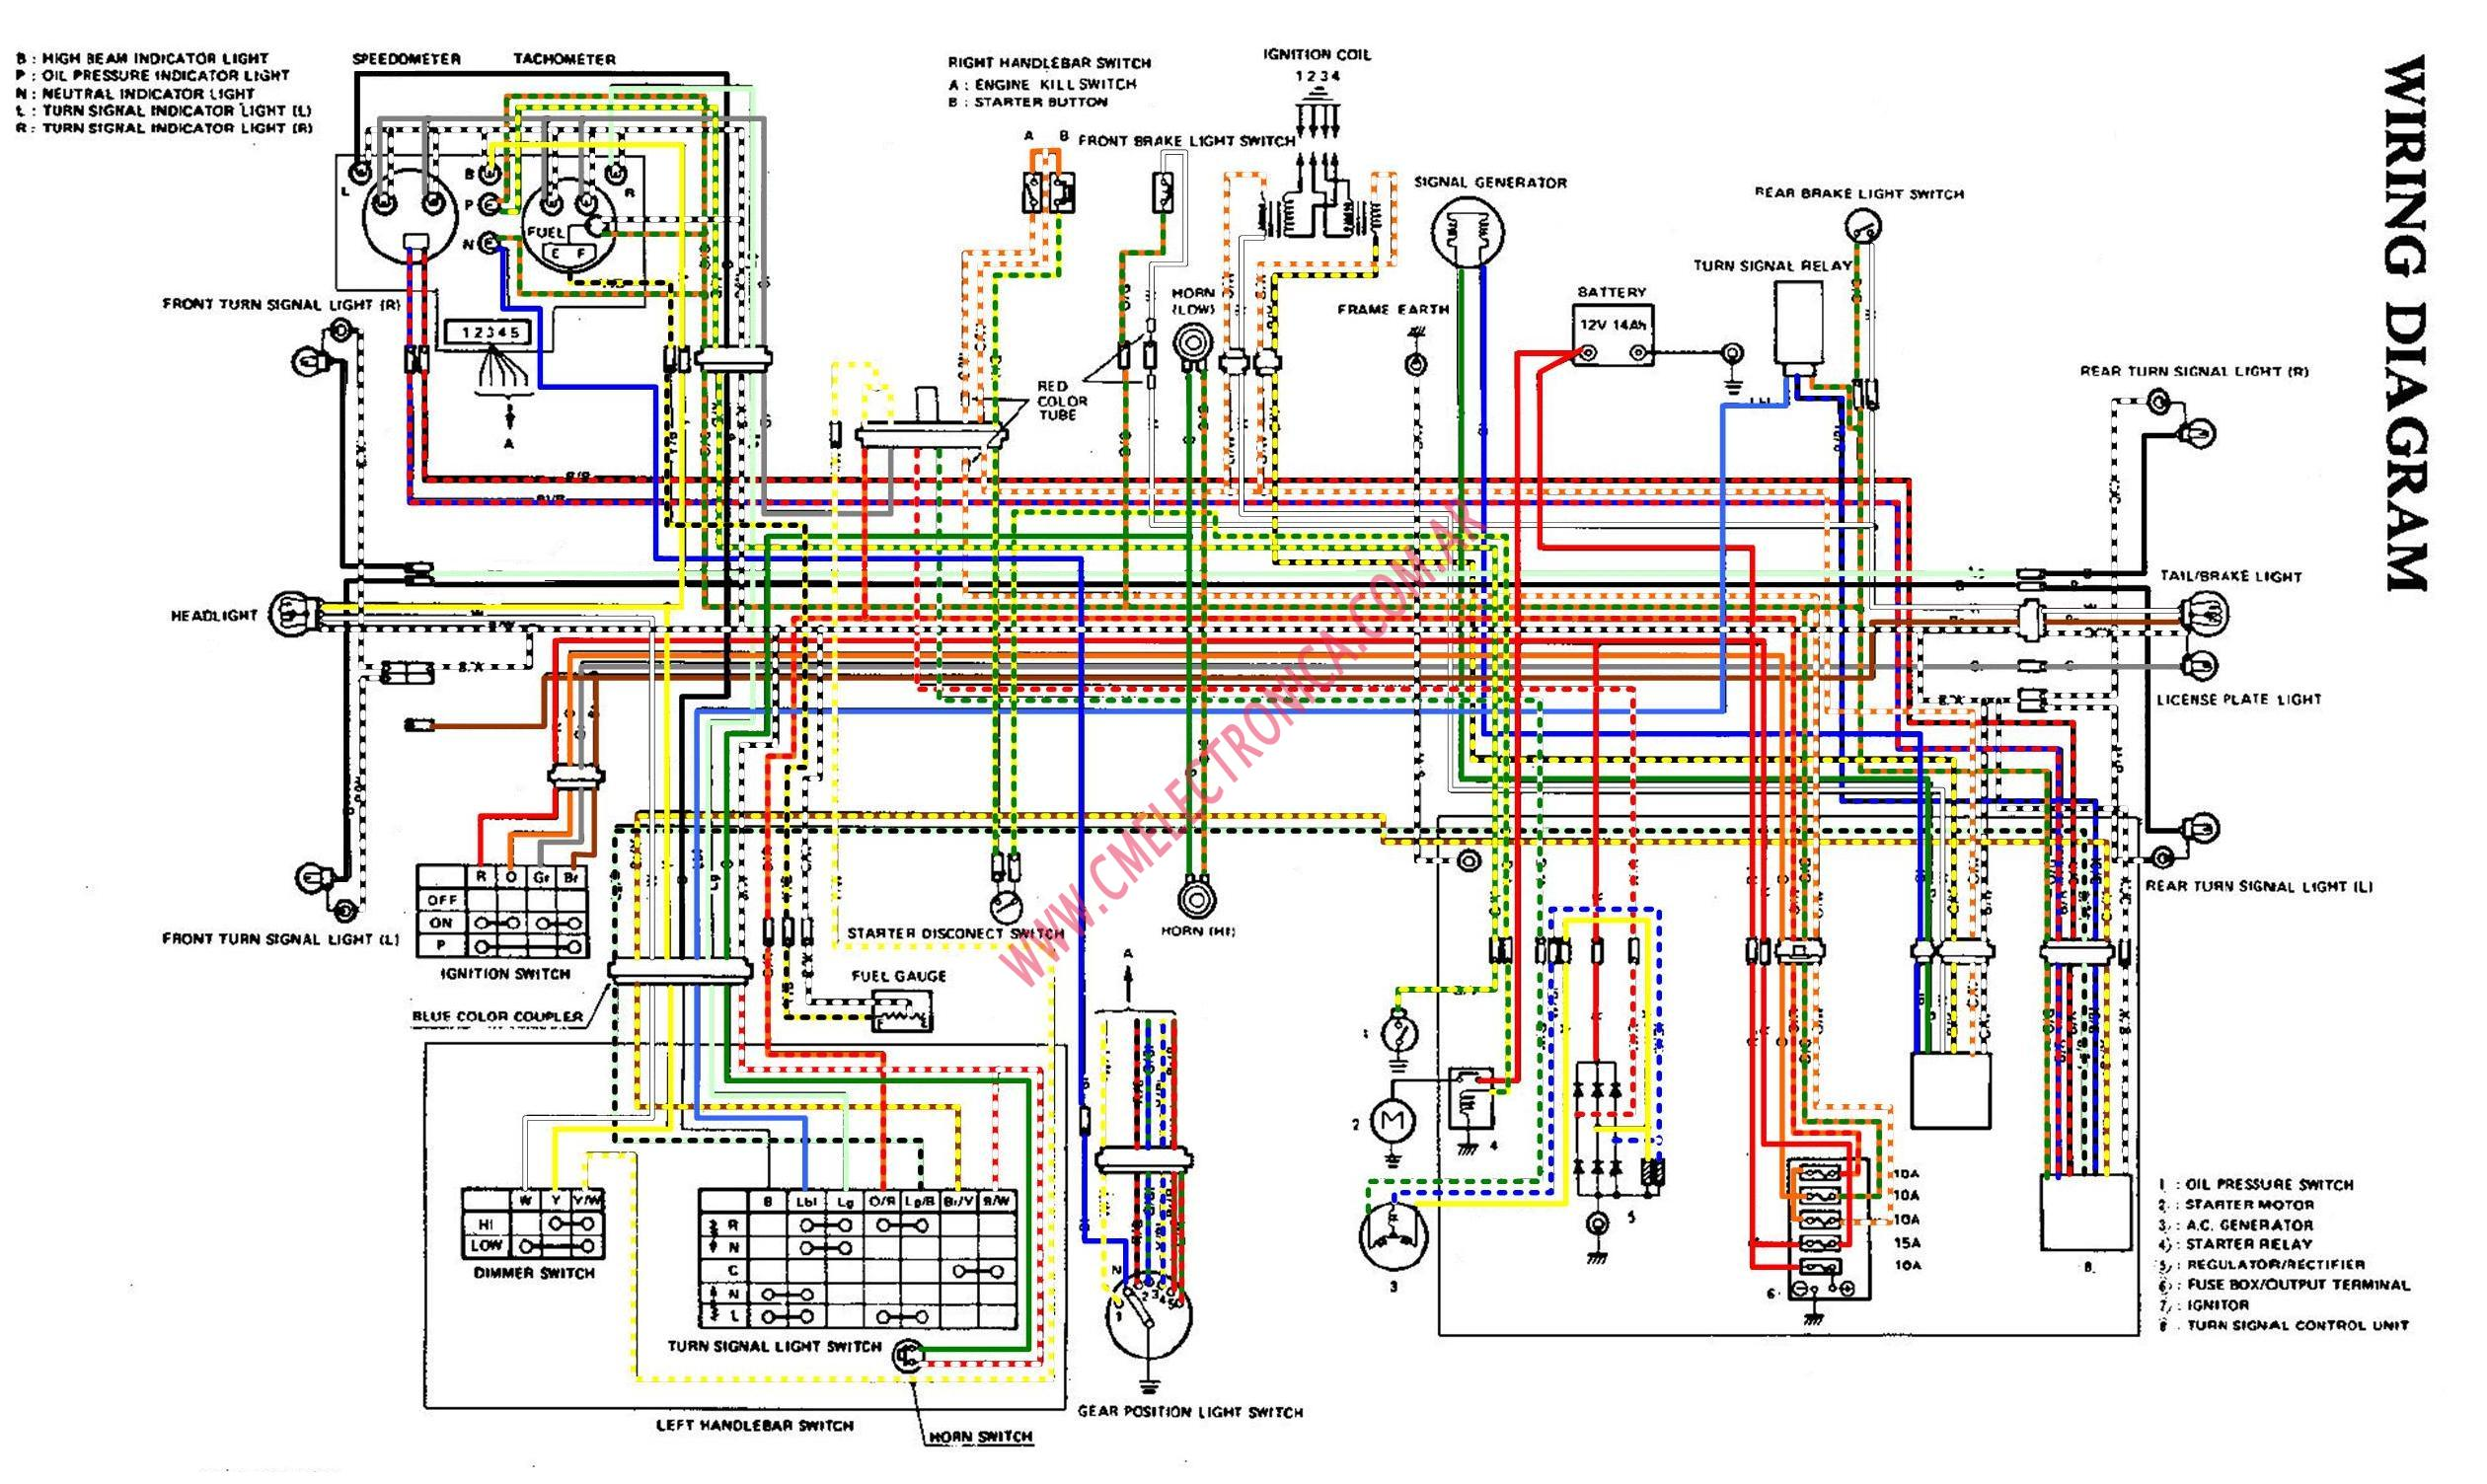 wrg 5168] bmw r1150gs wiring diagramwiring diagram gs 1150 wiring diagram and schematics rh rivcas org